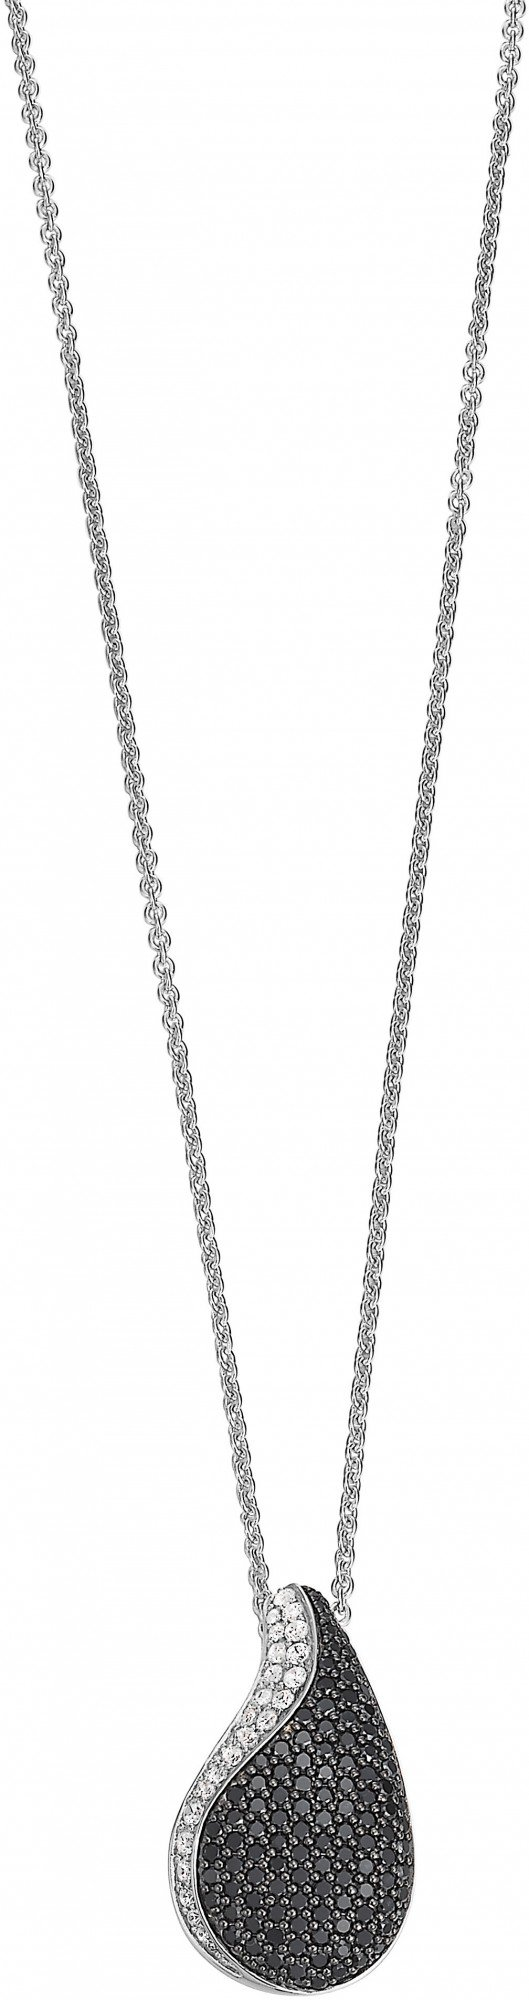 Esprit Collection Jewelry Peritau ELNL92231A800 Necklace for her Rhodanized Sterling Silver